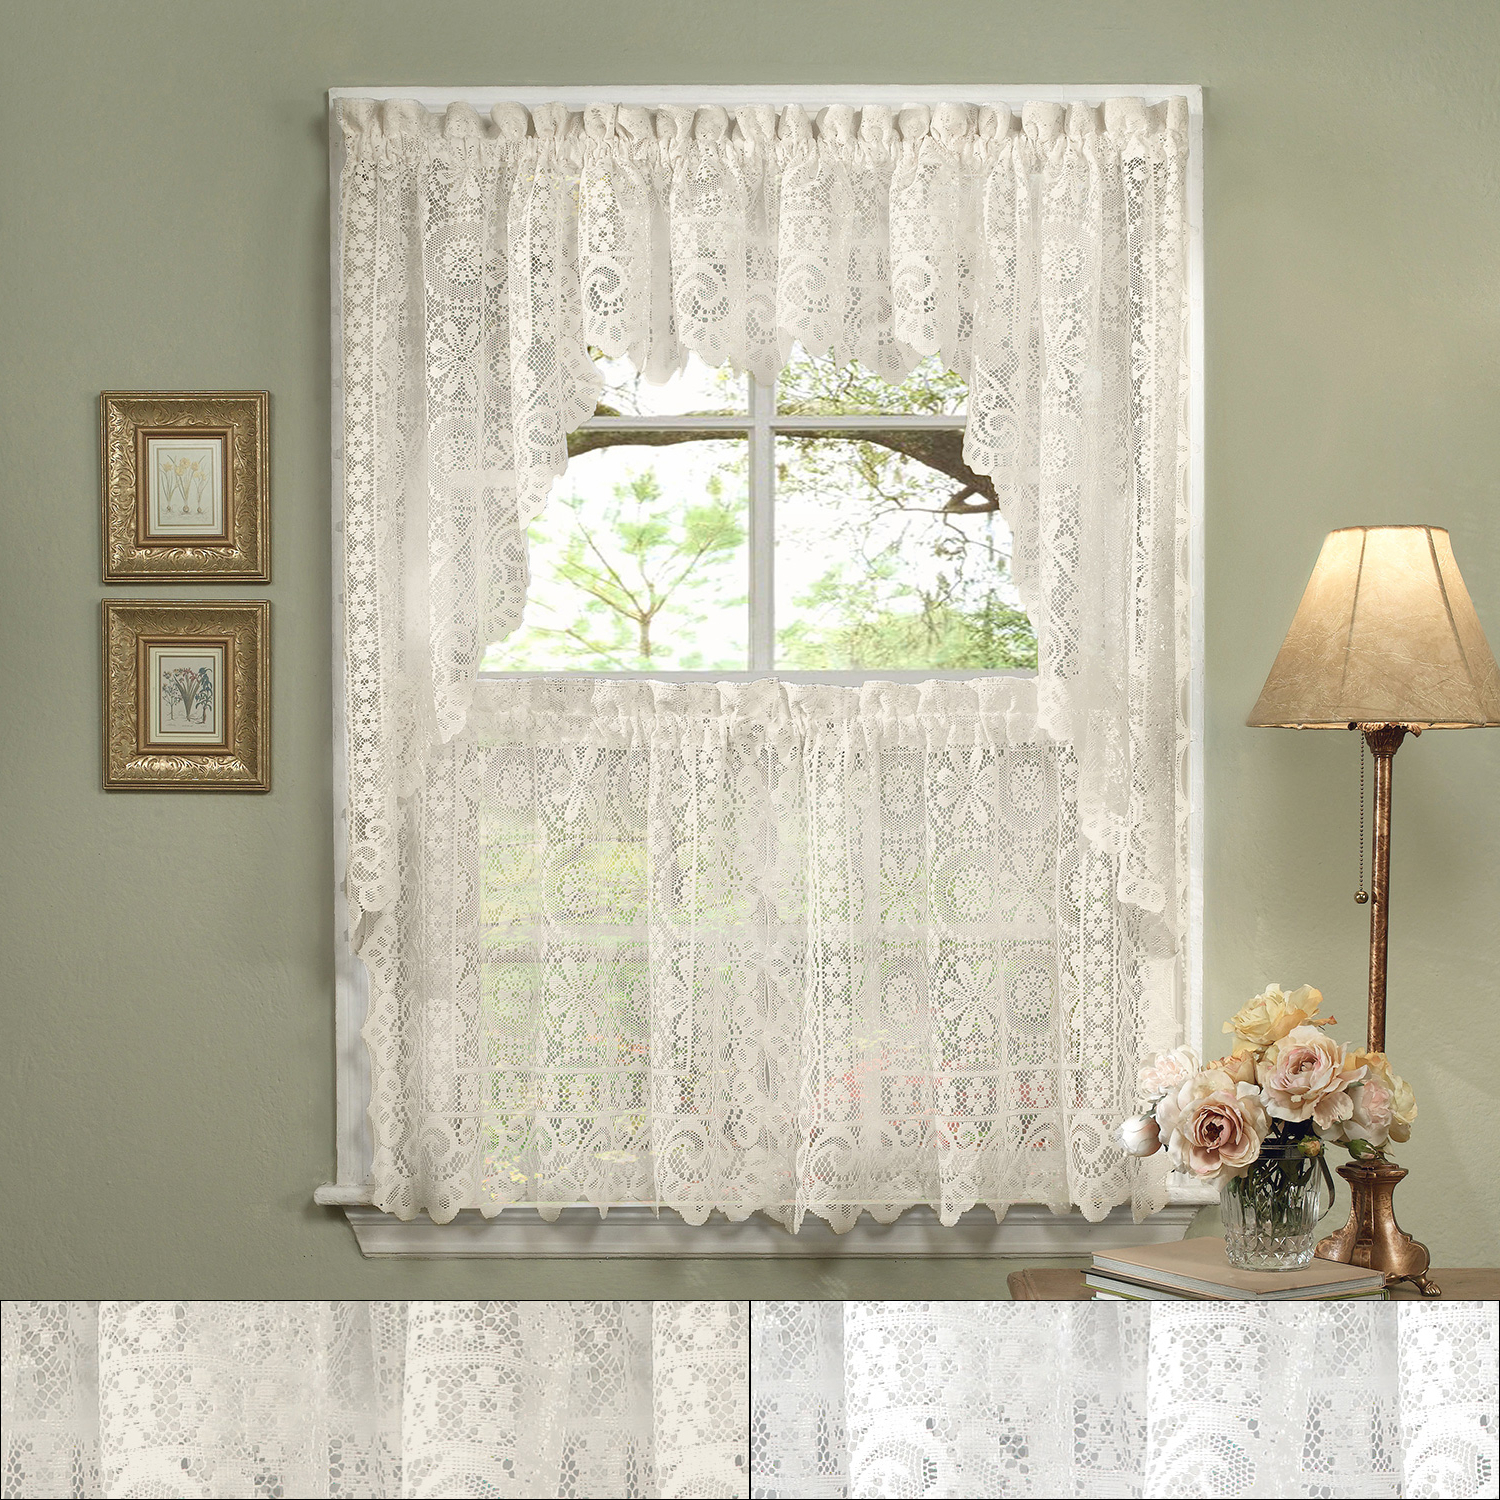 "Details About Hopewell Heavy Lace Floral Kitchen Curtain 24"" Tier Pair, Valance & Swag Set Pertaining To Most Up To Date Cotton Lace 5 Piece Window Tier And Swag Sets (View 5 of 20)"